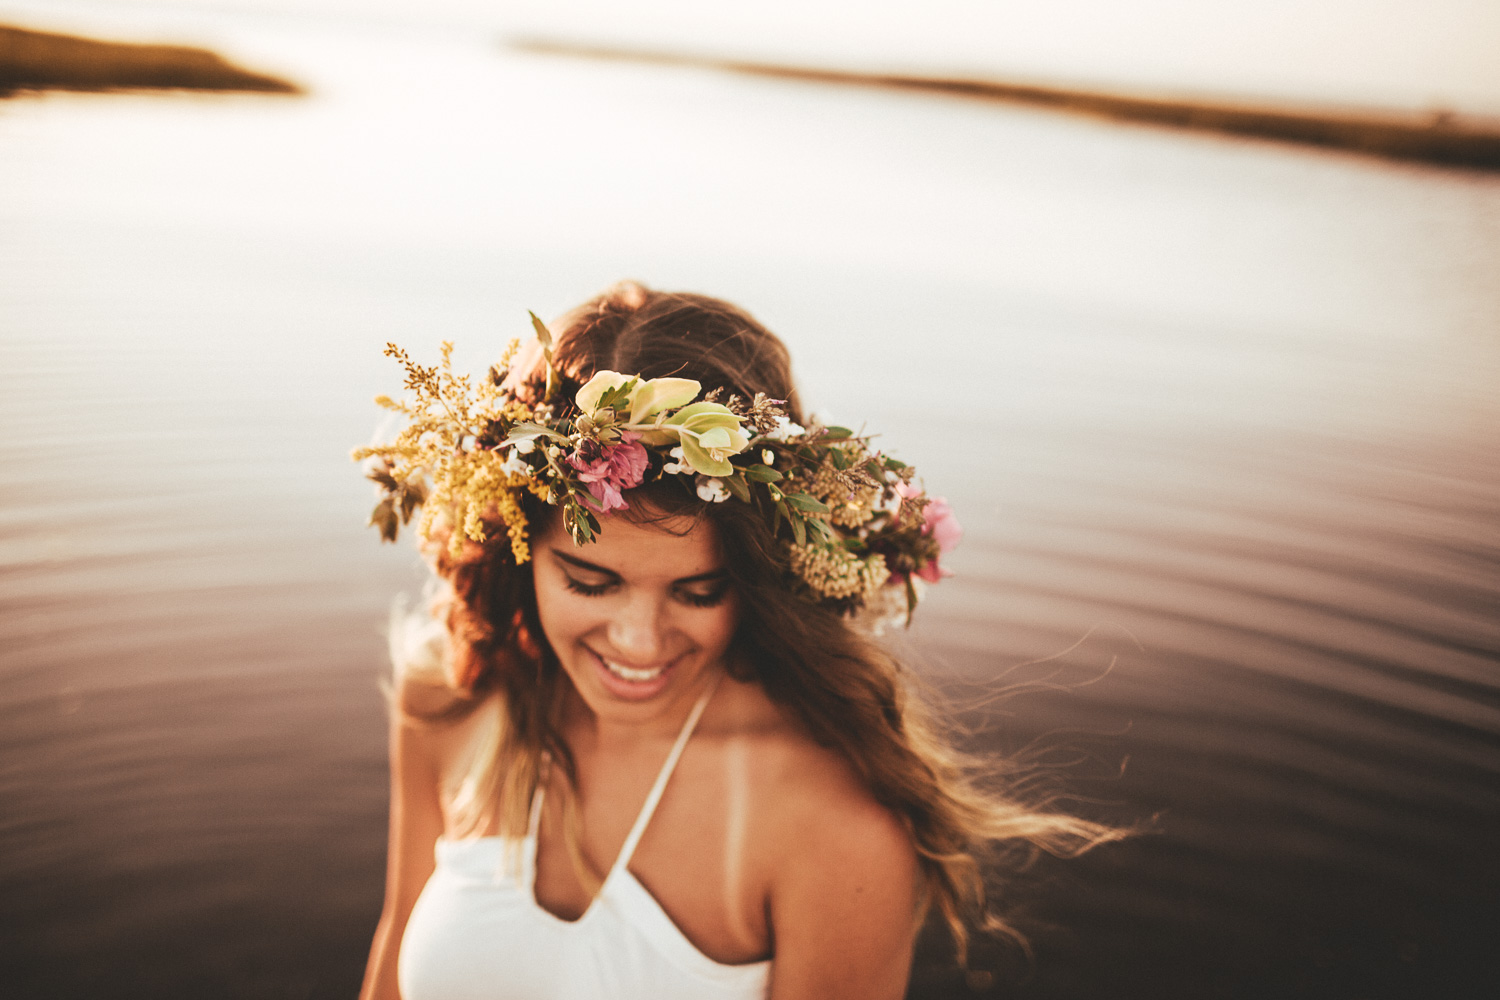 cape-cod-bay-flower-crown-portrait03.jpg